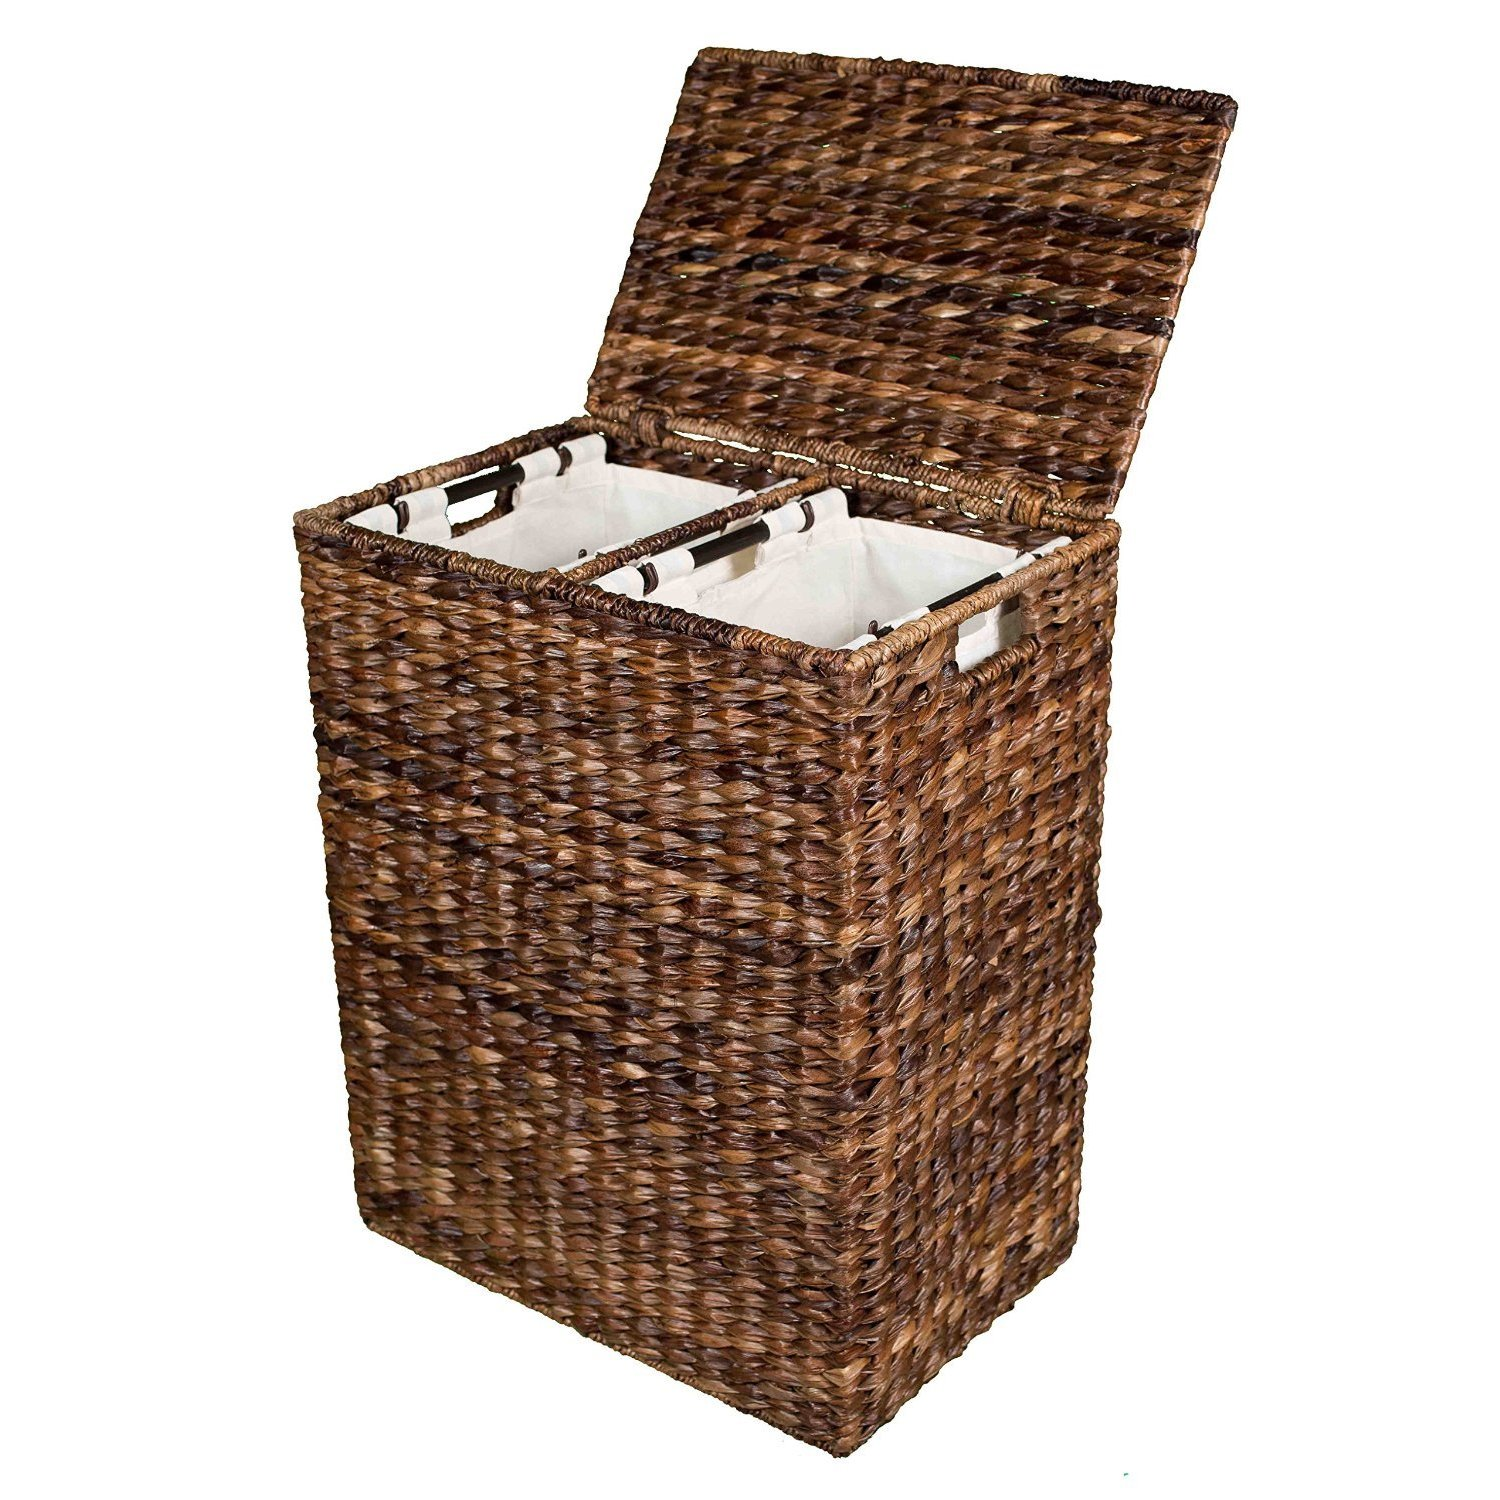 Shop birdrock home abaca divided laundry hamper free shipping today overstock com 12433585